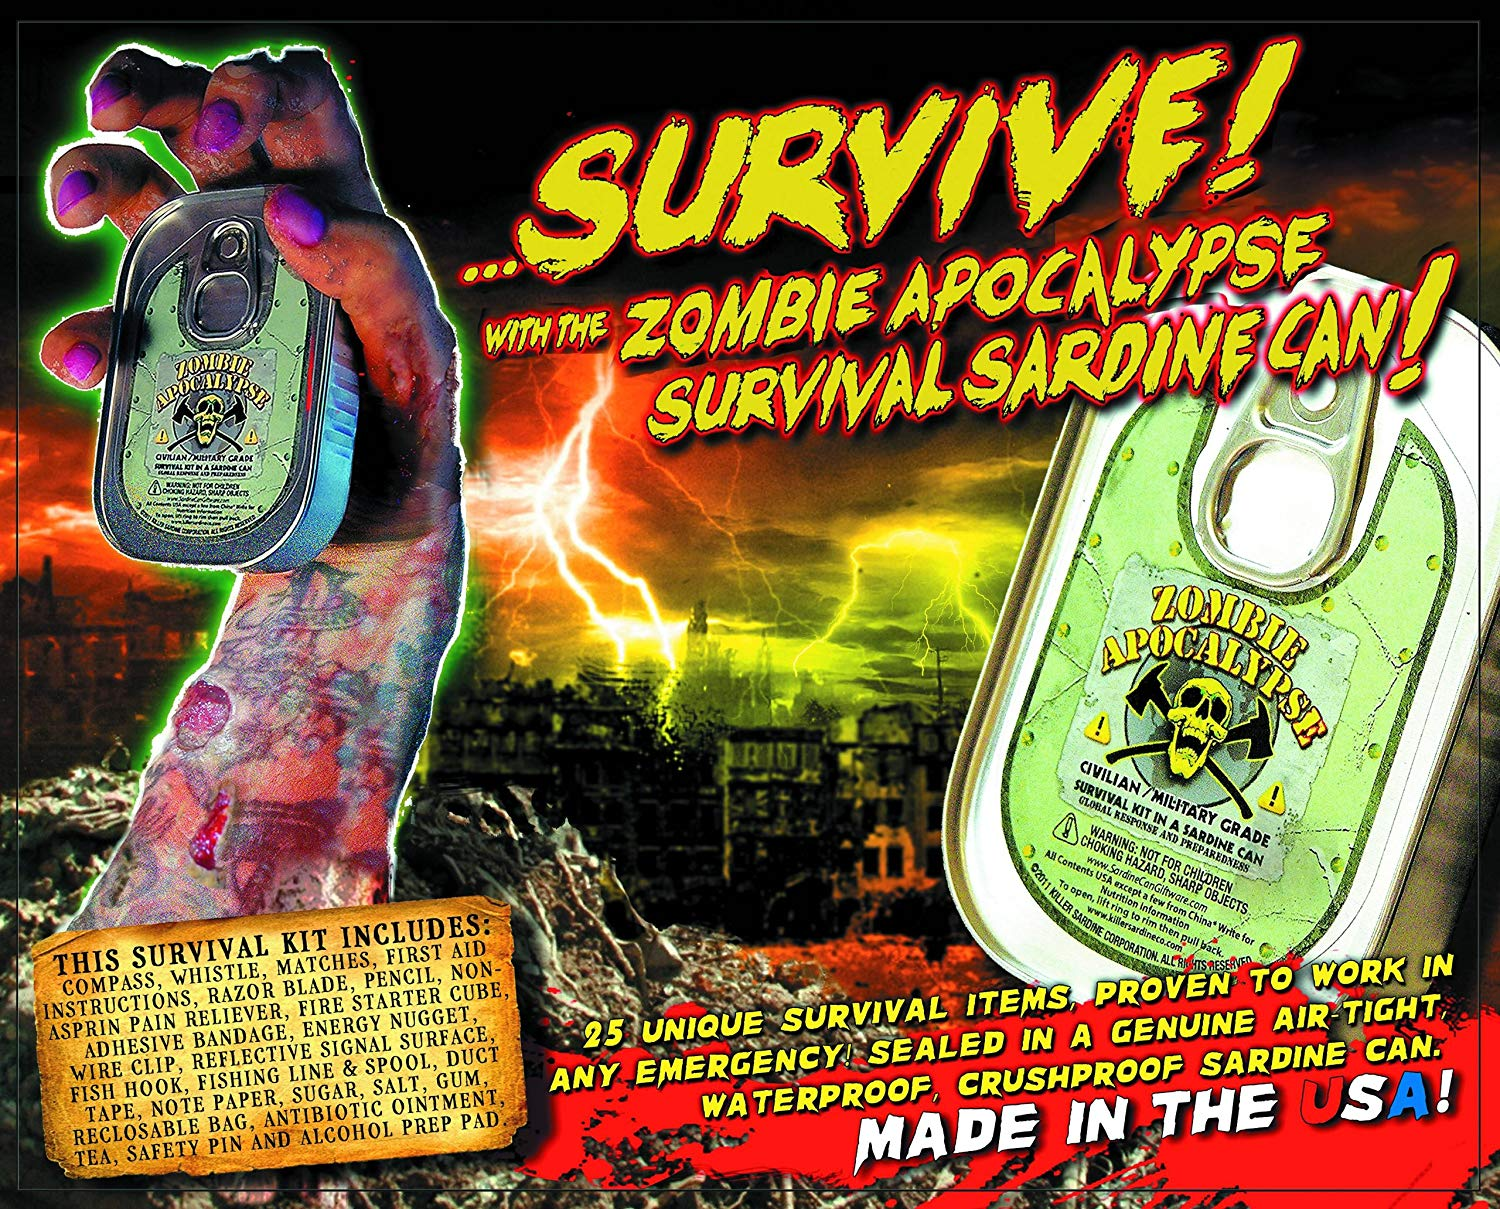 Includes a lot of stuff in case of a zombie outbreak... or if you get lost in the wild.